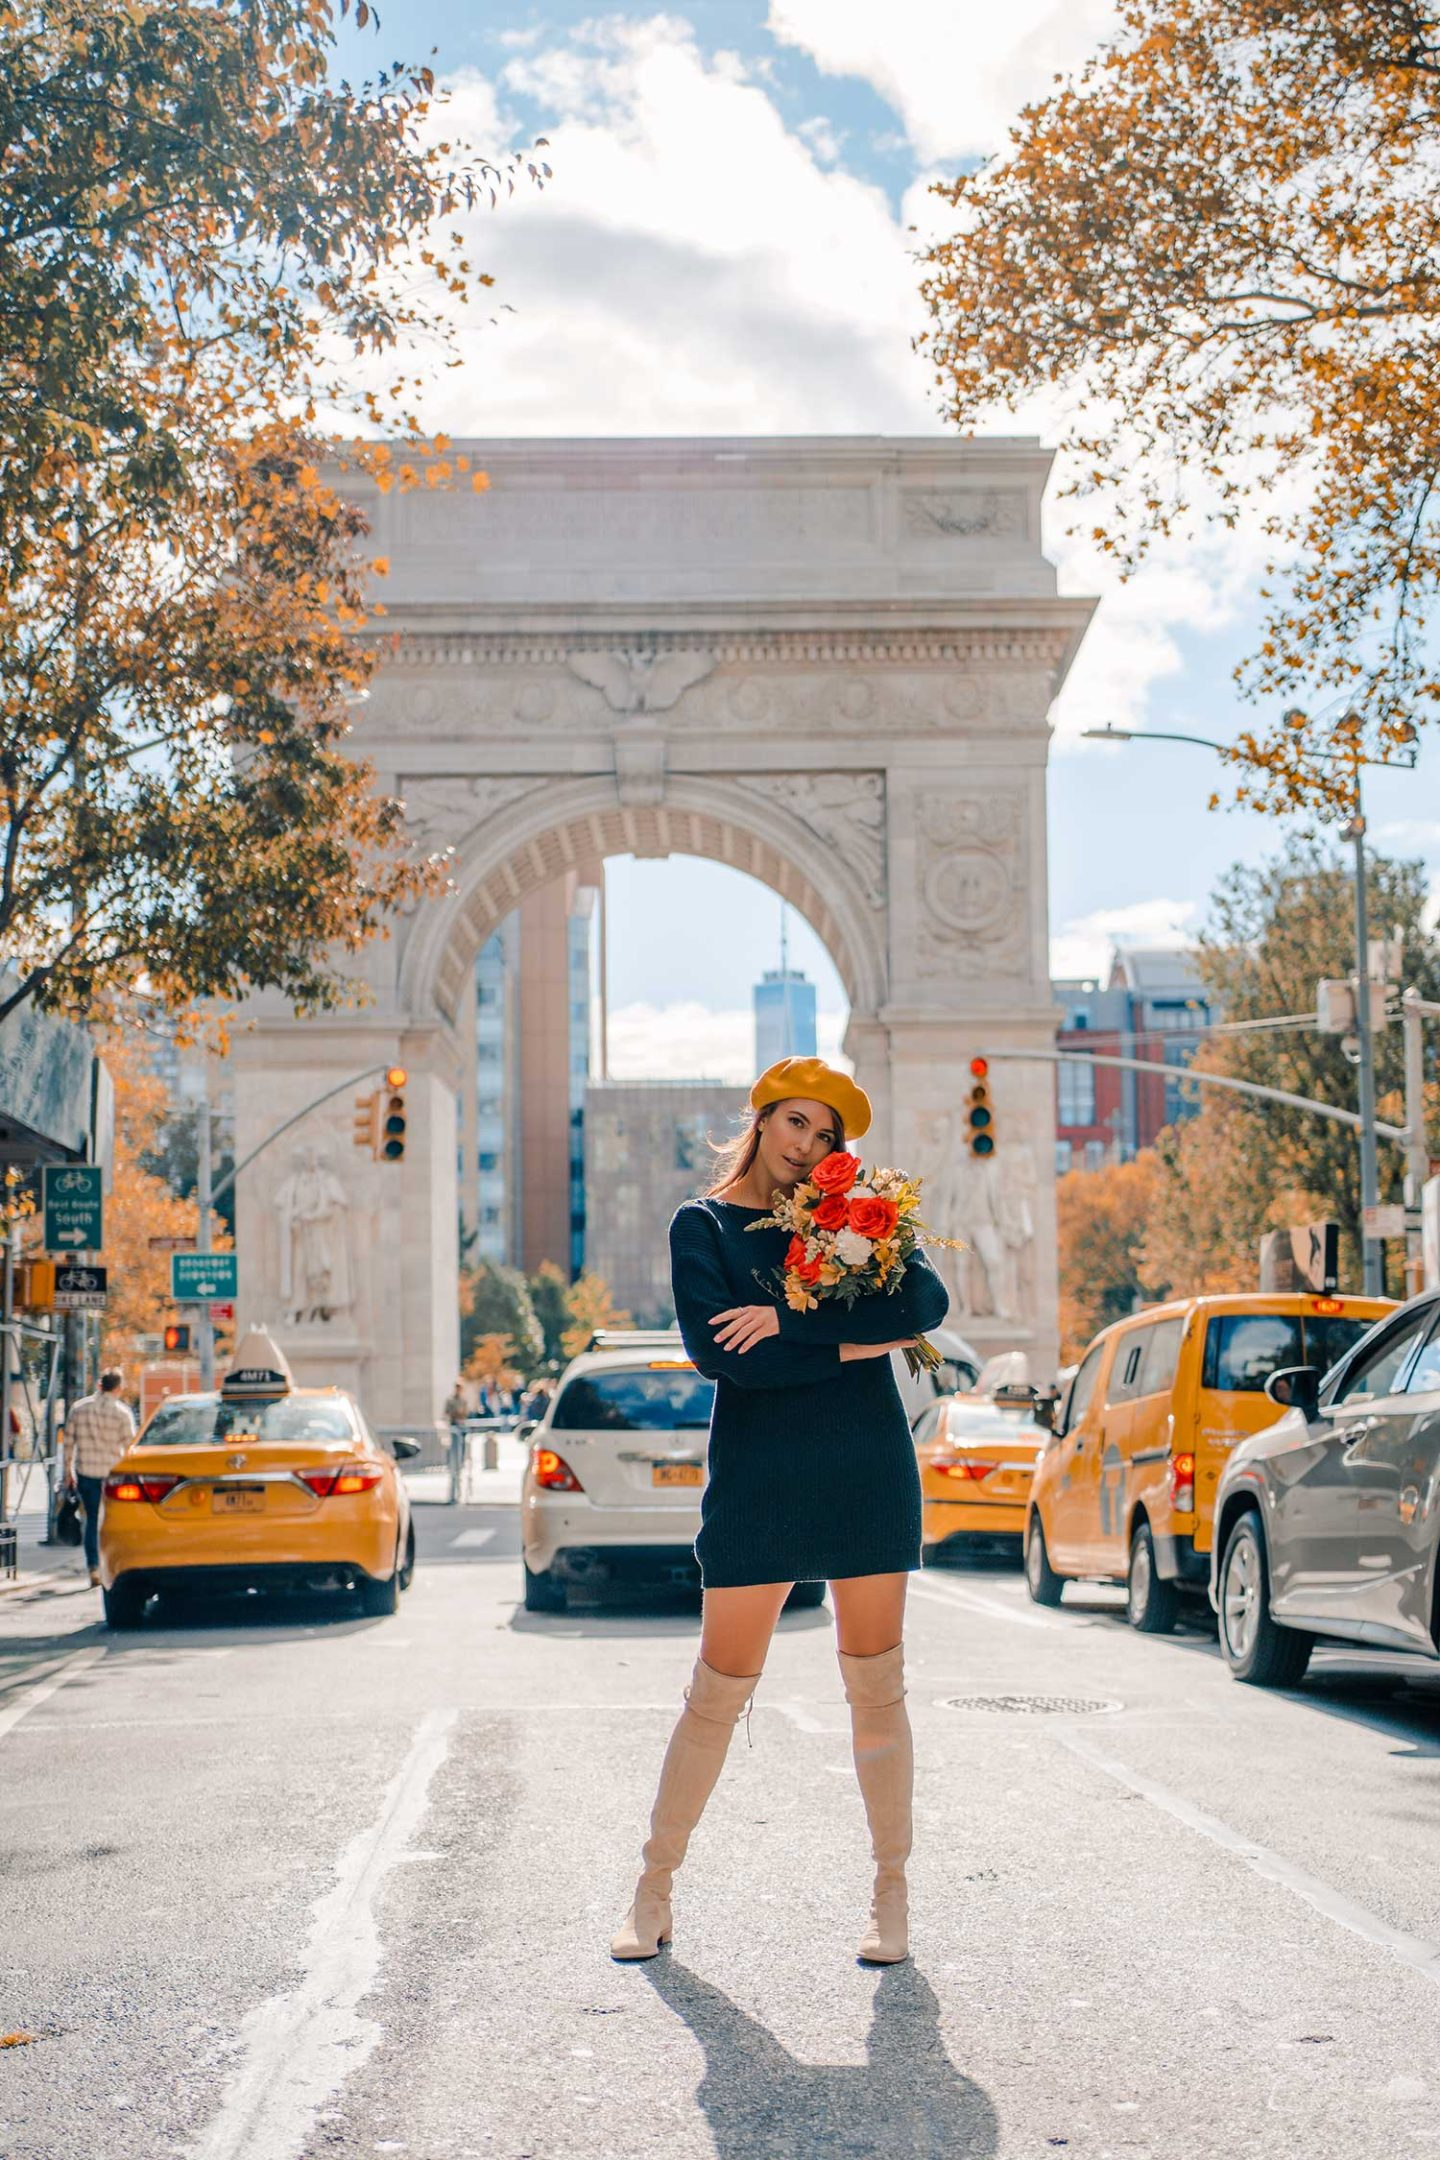 The 10 Best Instagram Spots in NYC | New York City photography ideas